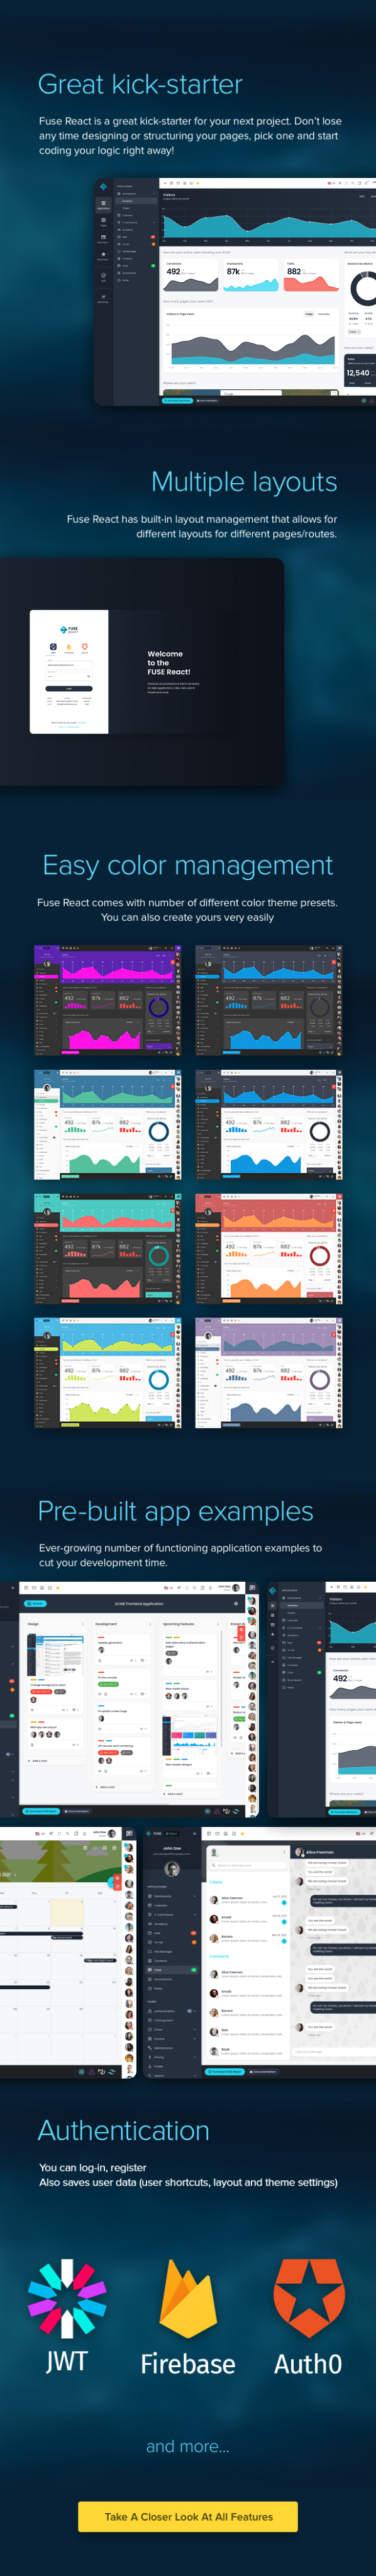 Fuse - React Redux Material Design Admin Template by